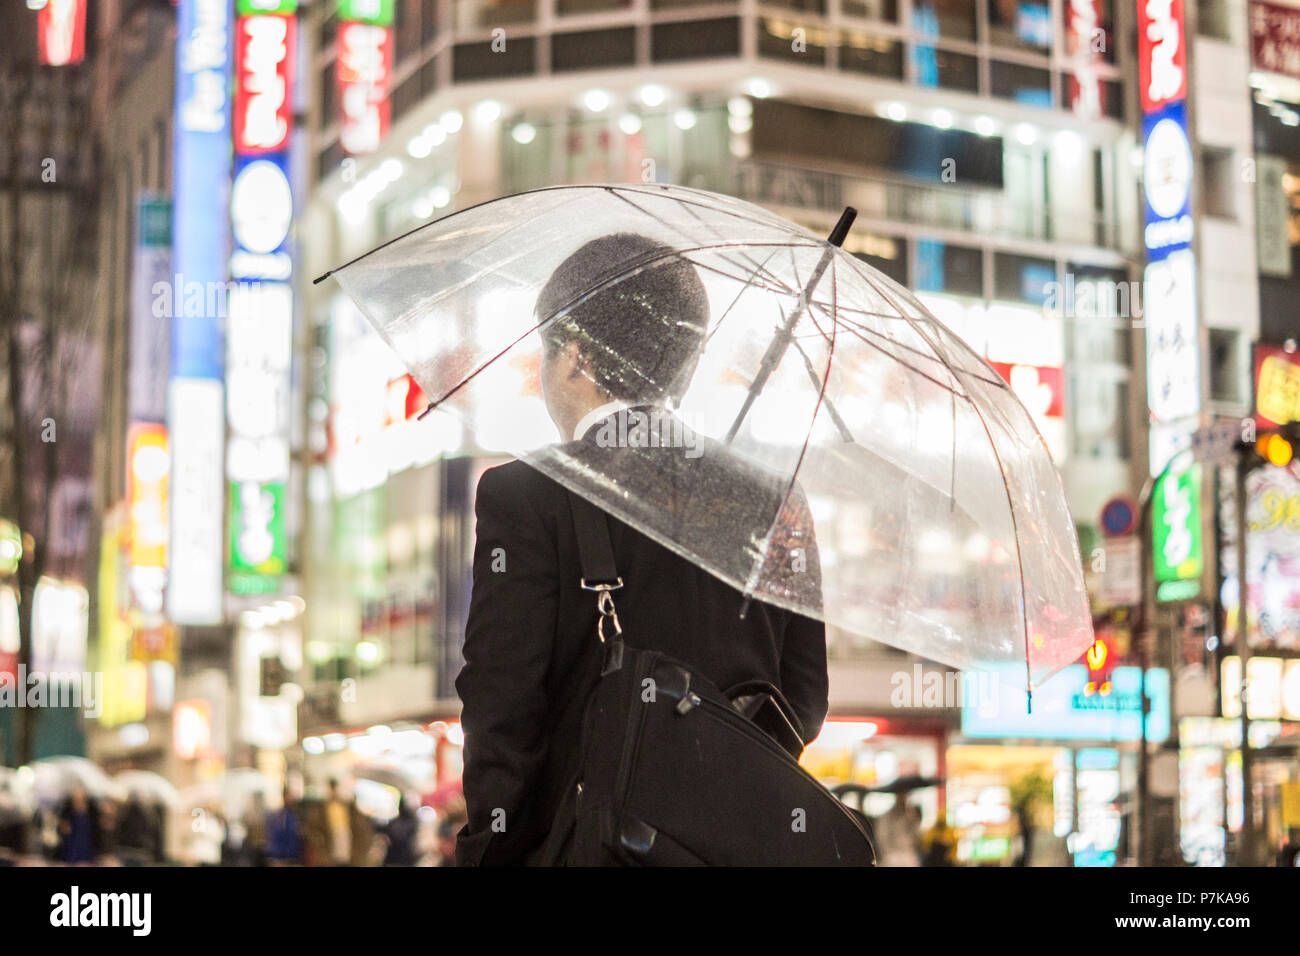 A businessman with an umbrella in the brightly lit streets in the evening - Stock Image